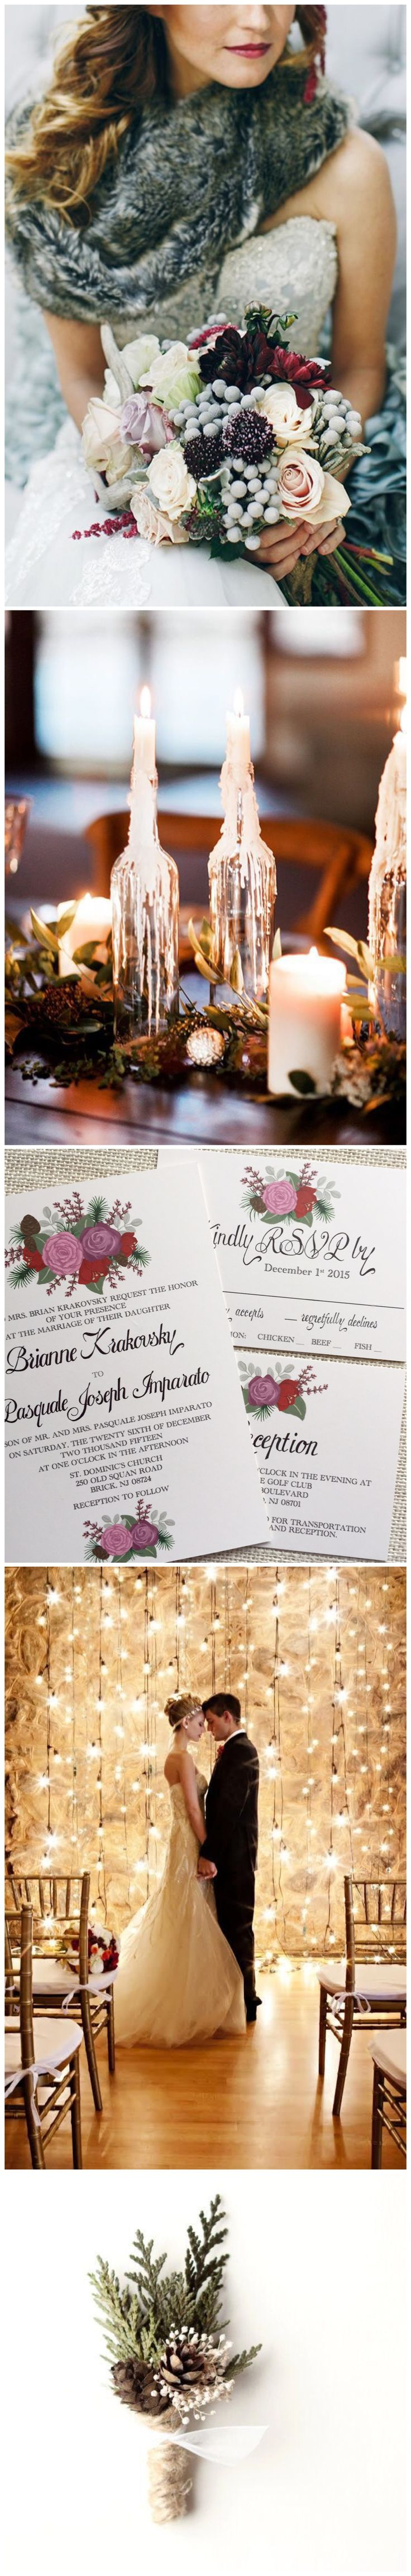 Berry purple and deep red floral wedding invitation perfect for a winter wedding. Color customization available for this design from Behold Designz.